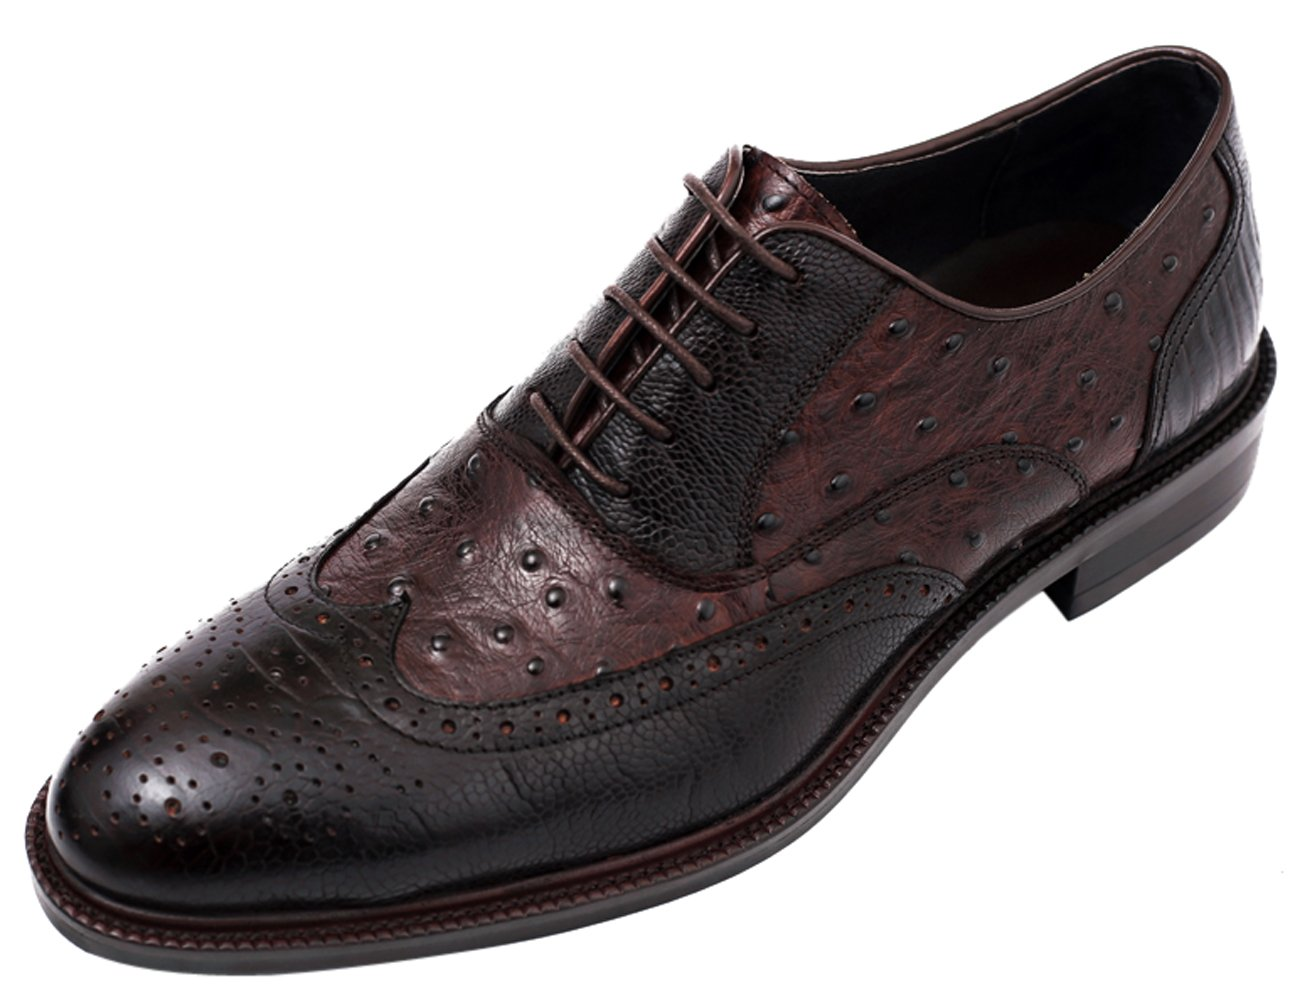 Santimon Mens Shoes Casual Classic Brogue Lace up Embossed Leather Printed Dress Shoes by Tan 6.5 D(M) US